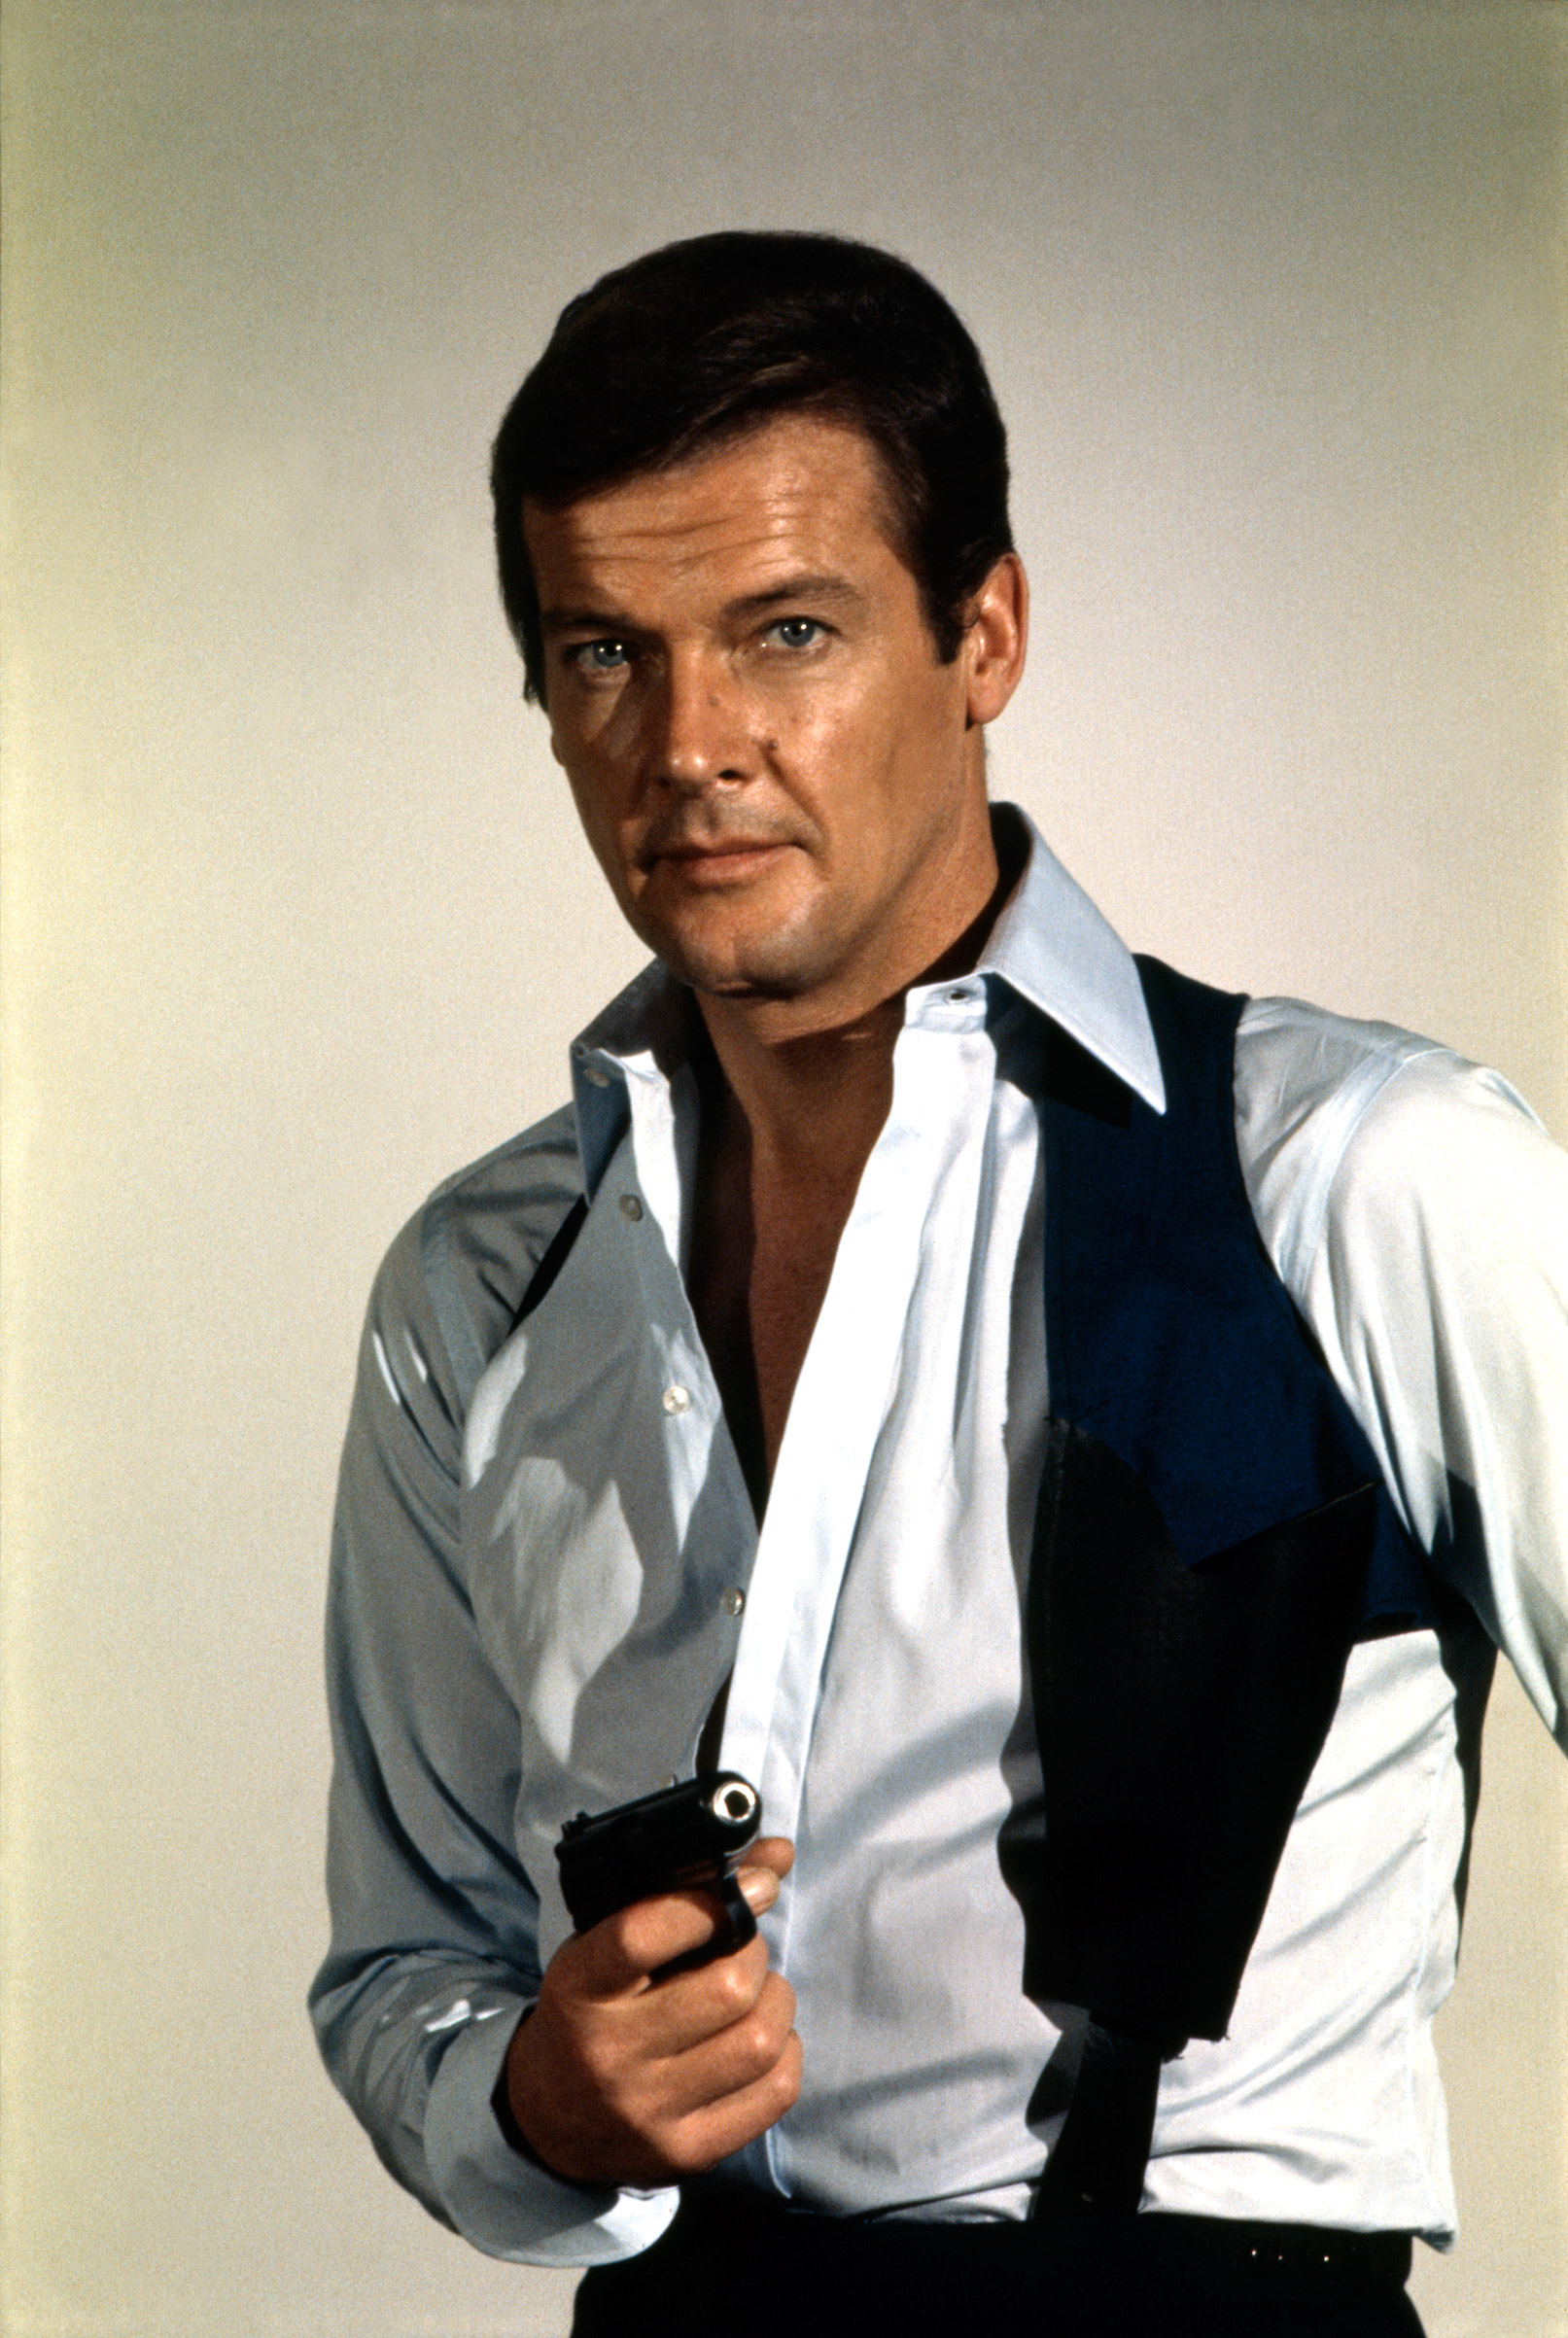 Roger Moore as James Bond from the movie Live and Let Die, 1973.